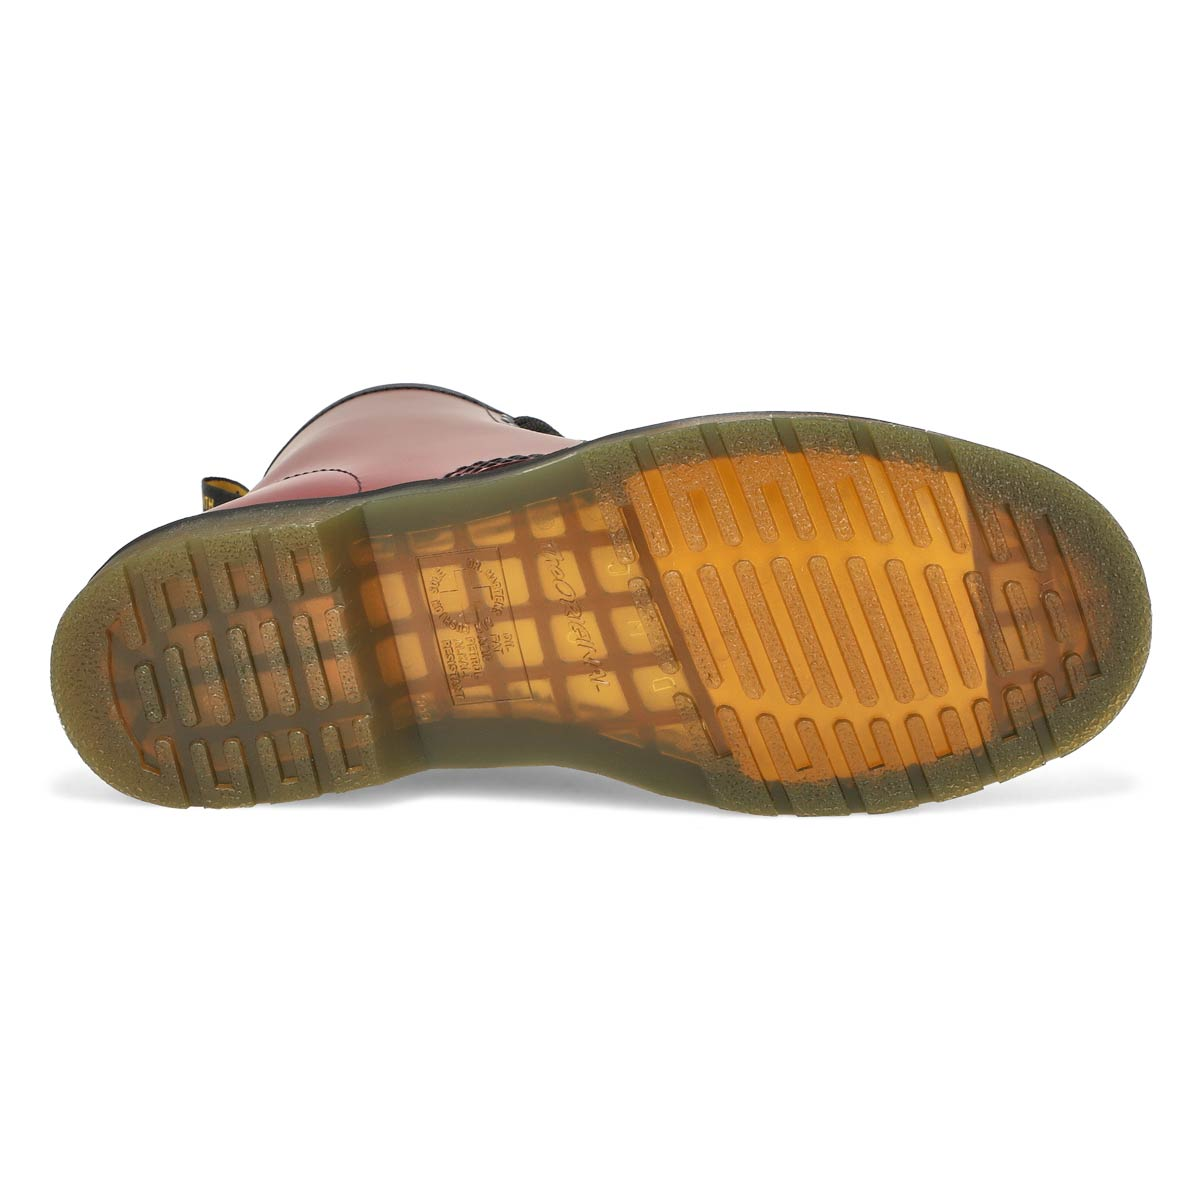 Botte 1460 8 œillets, rouge cerise, hom